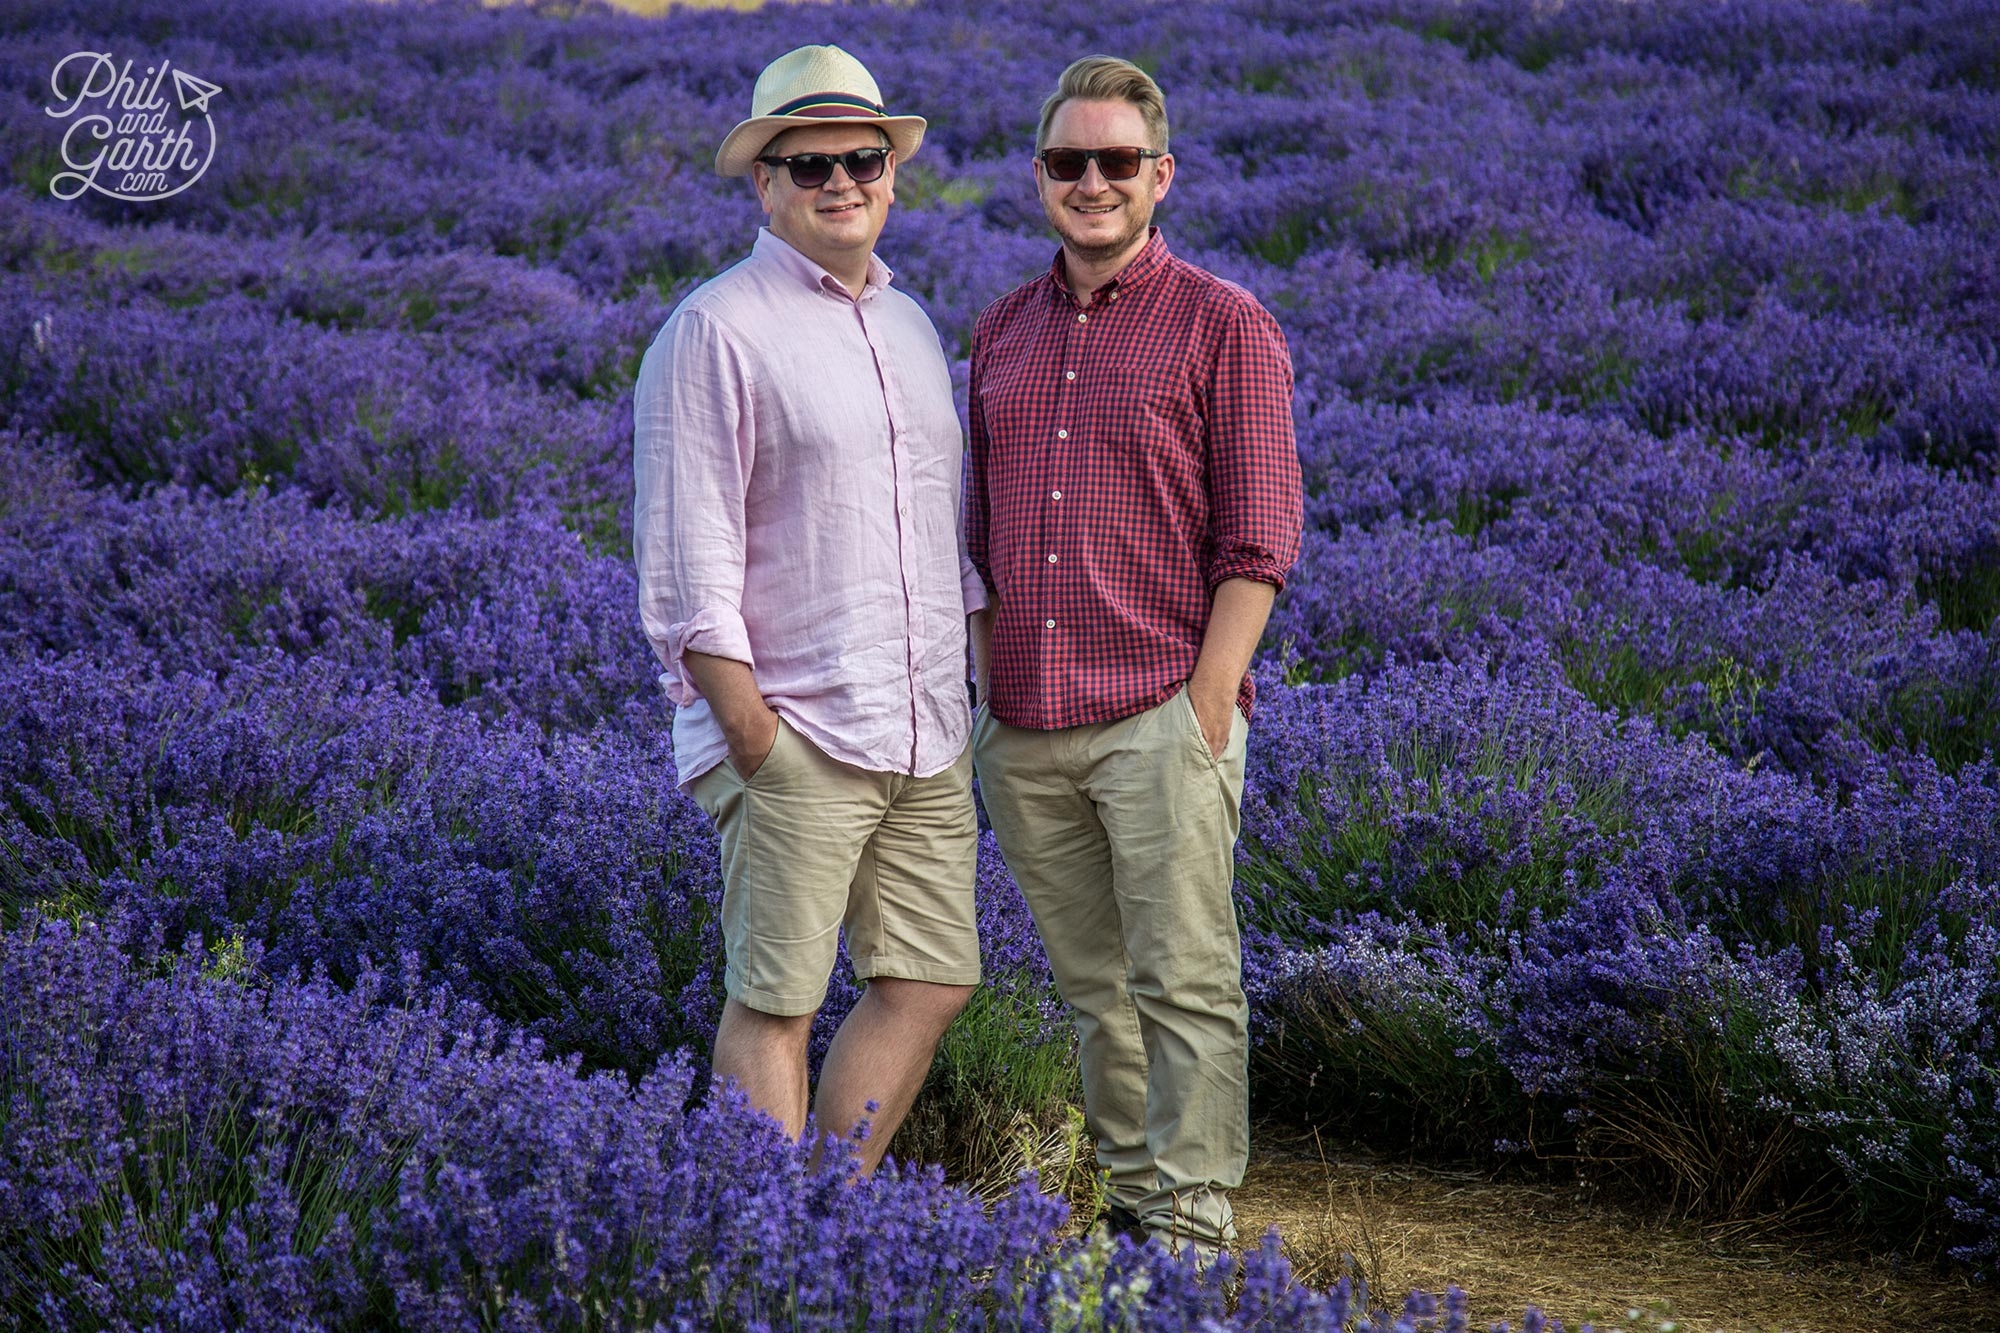 Phil and Garth at Cotswold Lavender